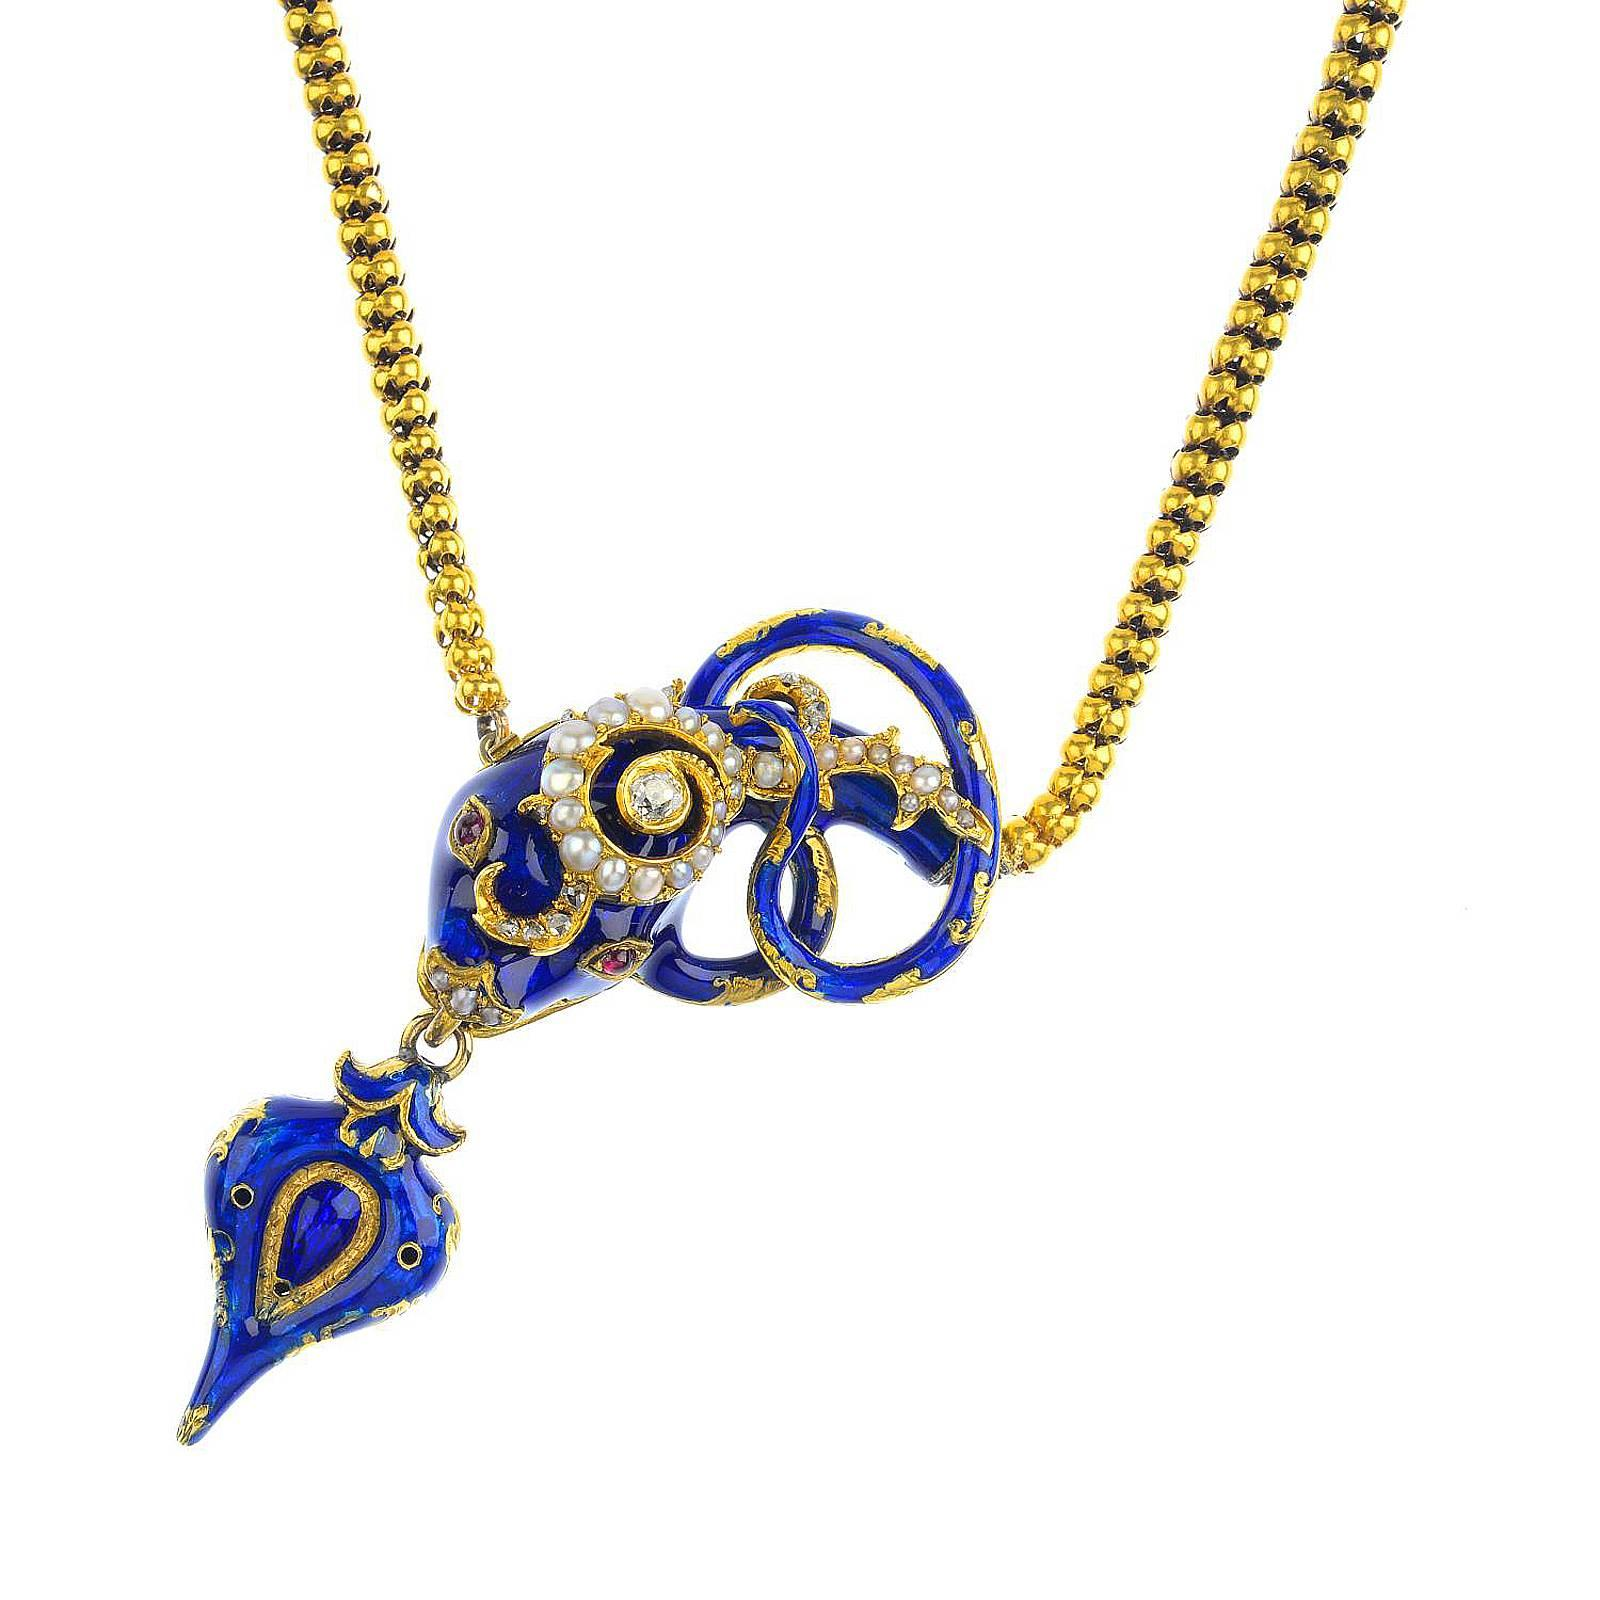 bonas necklace oliver jewellery blue enamel fionn pebble